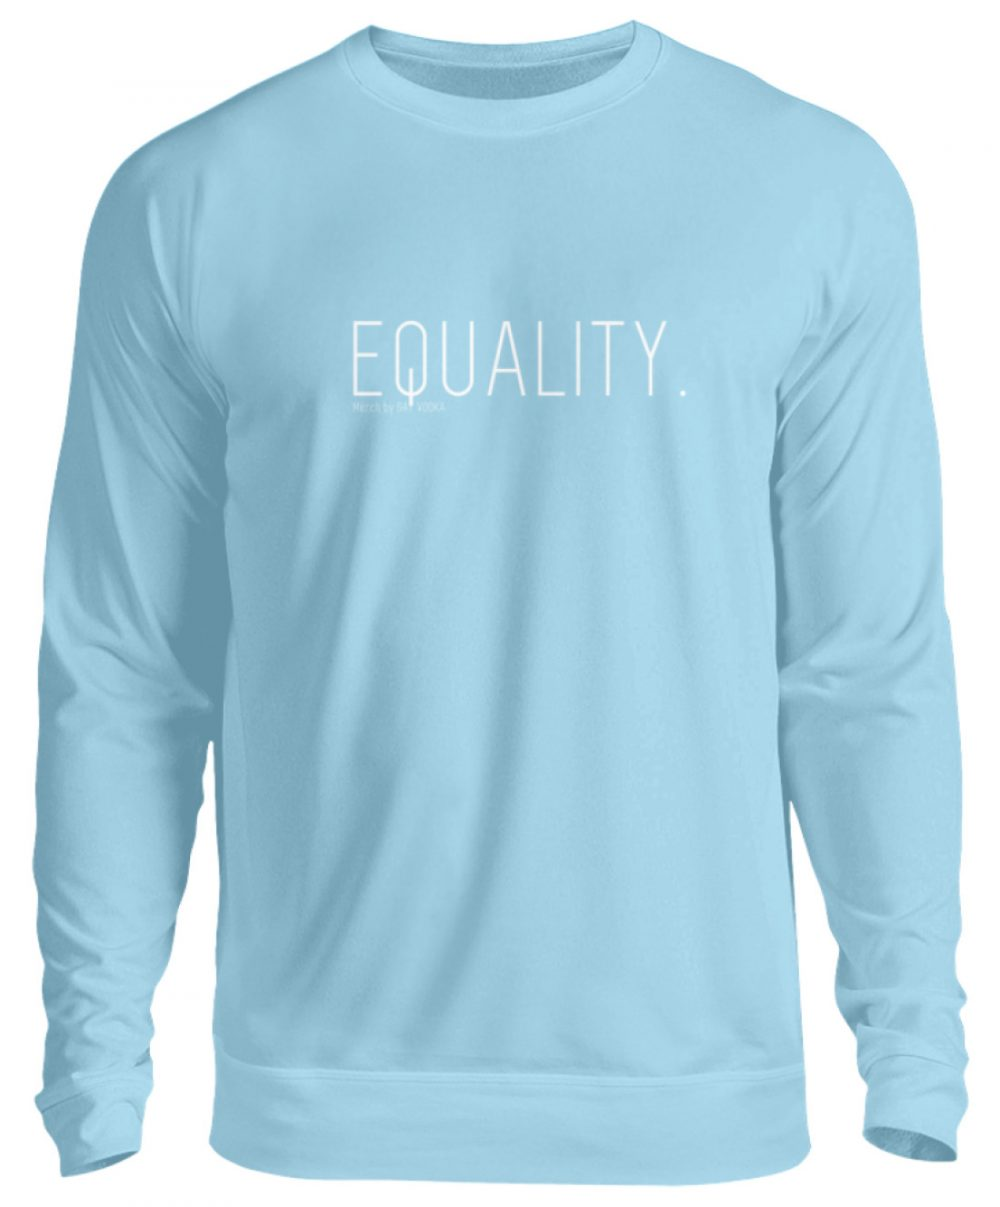 EQUALITY. - Unisex Pullover-674